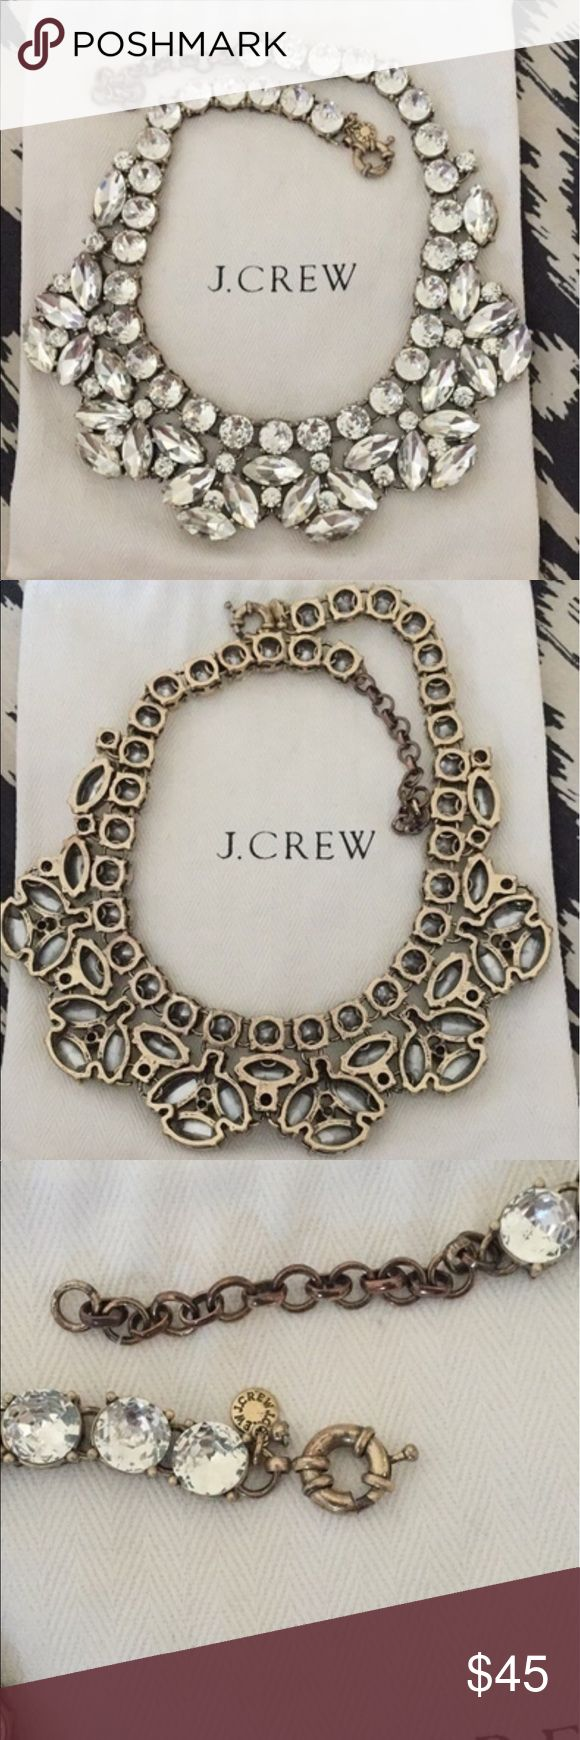 J Crew statement necklace Authentic J Crew necklace, only worn a few times and dust bag is included. J. Crew Jewelry Necklaces